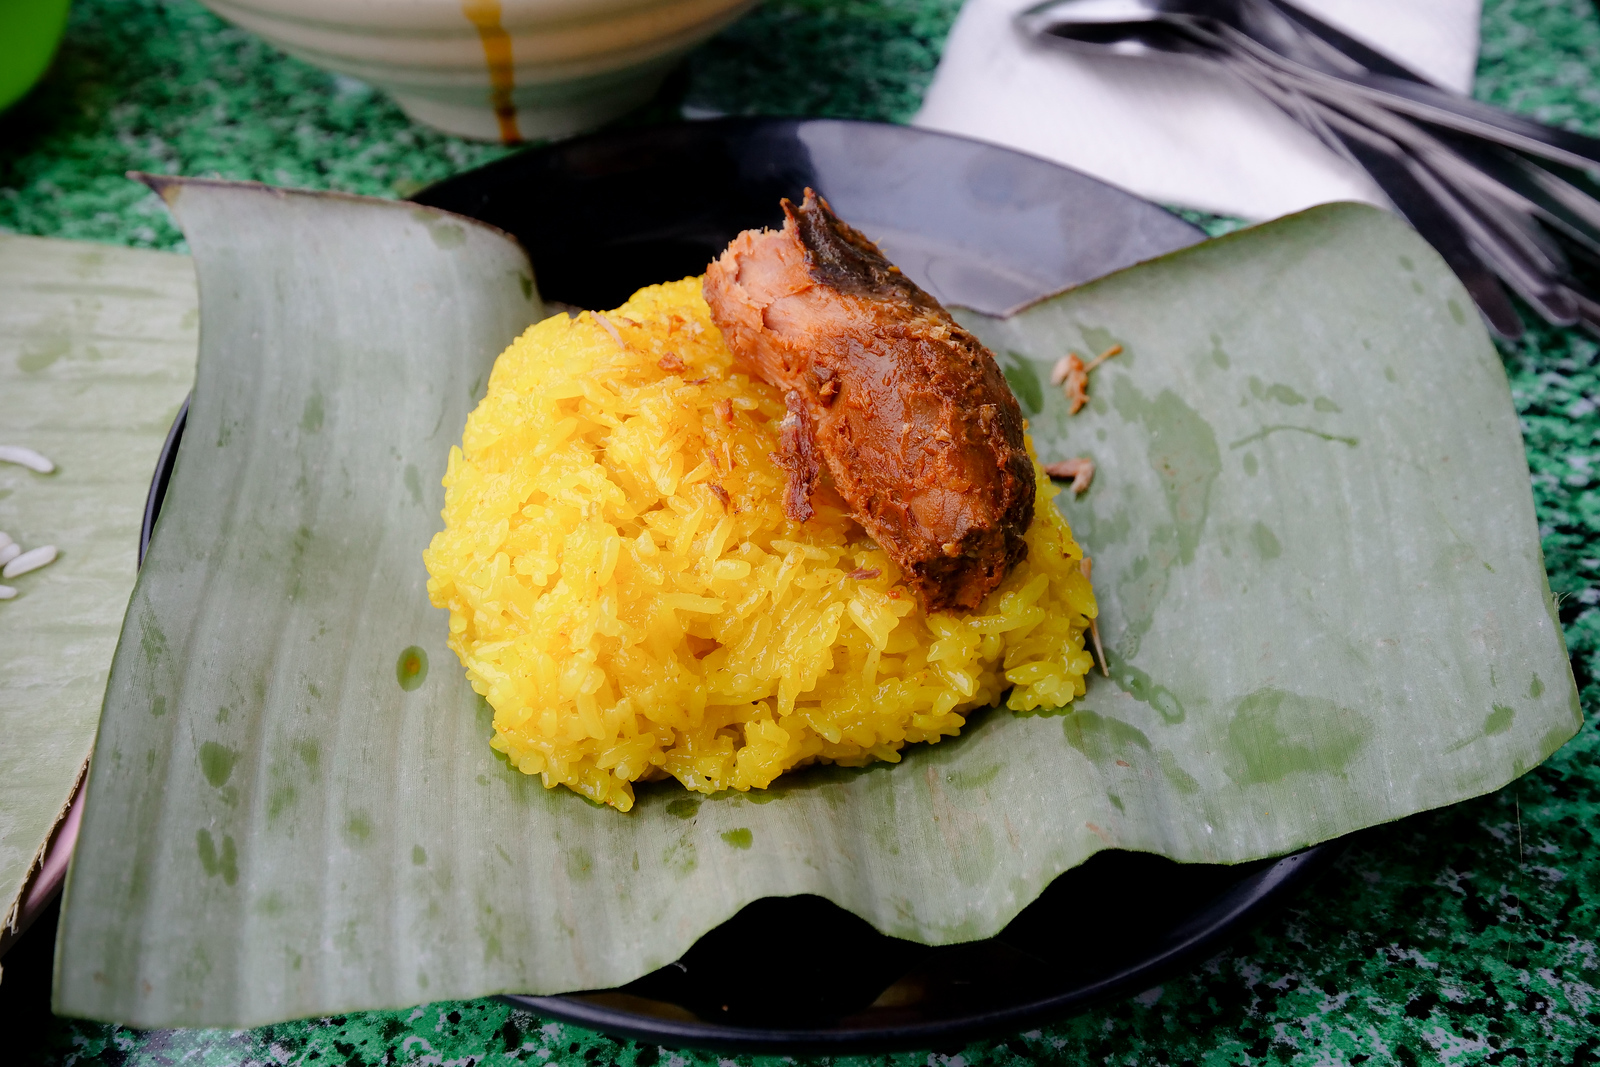 Nasi kunyit is turmeric flavored (and colored) sticky rice